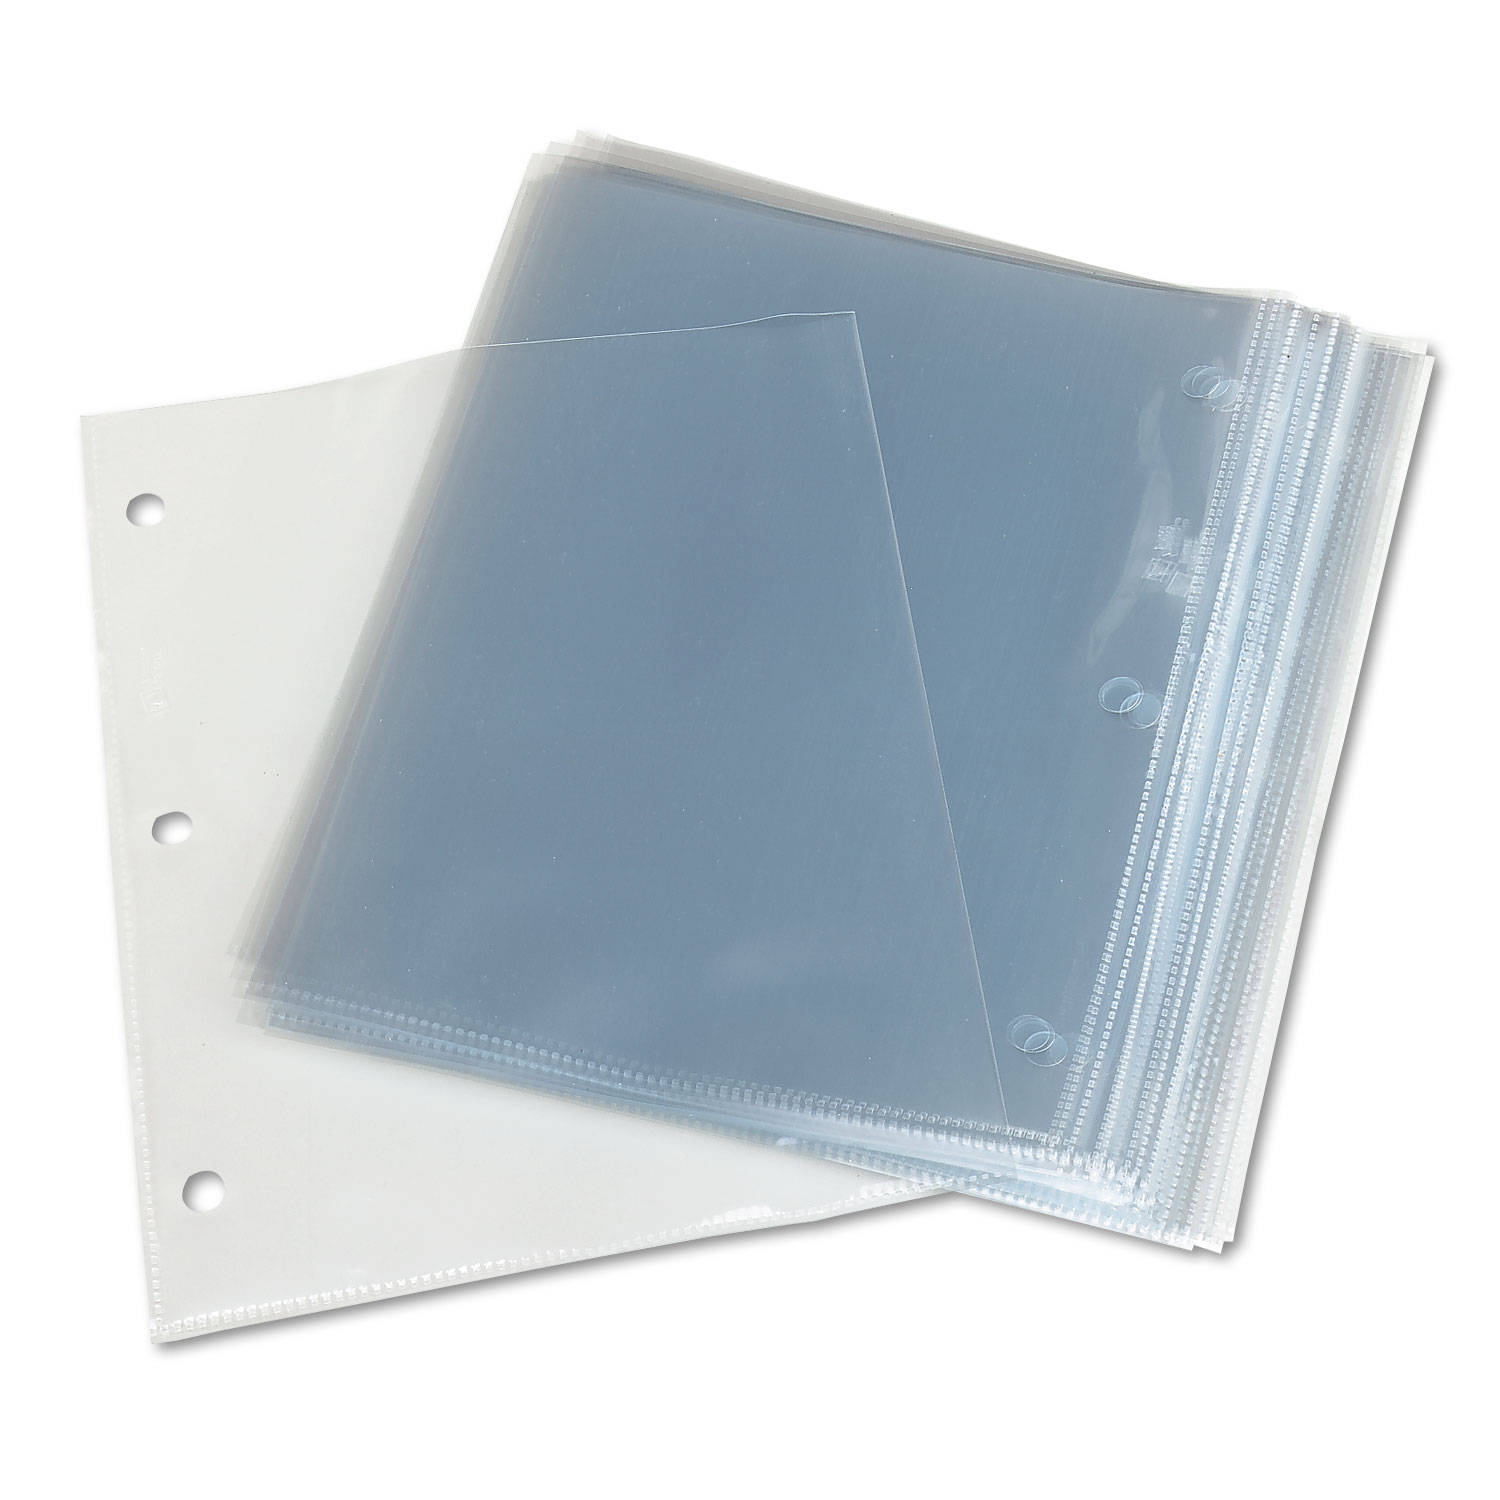 TopLoad Poly 3Hole Punched Sheet Protectors by Avery